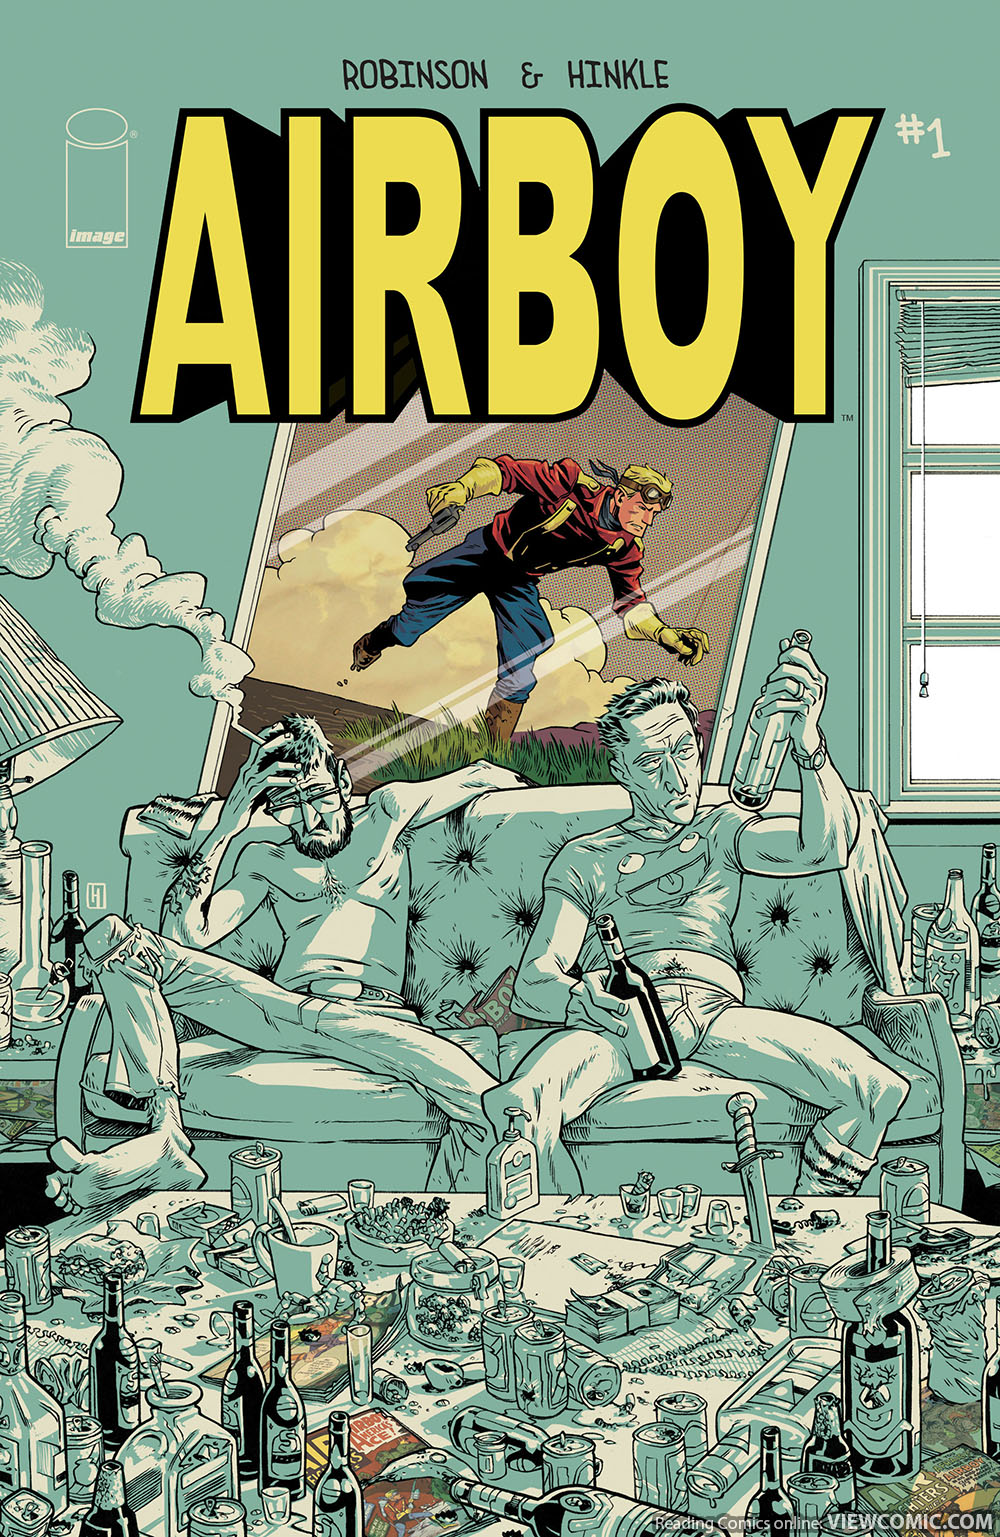 Airboy James Robinson Greg Hinkle